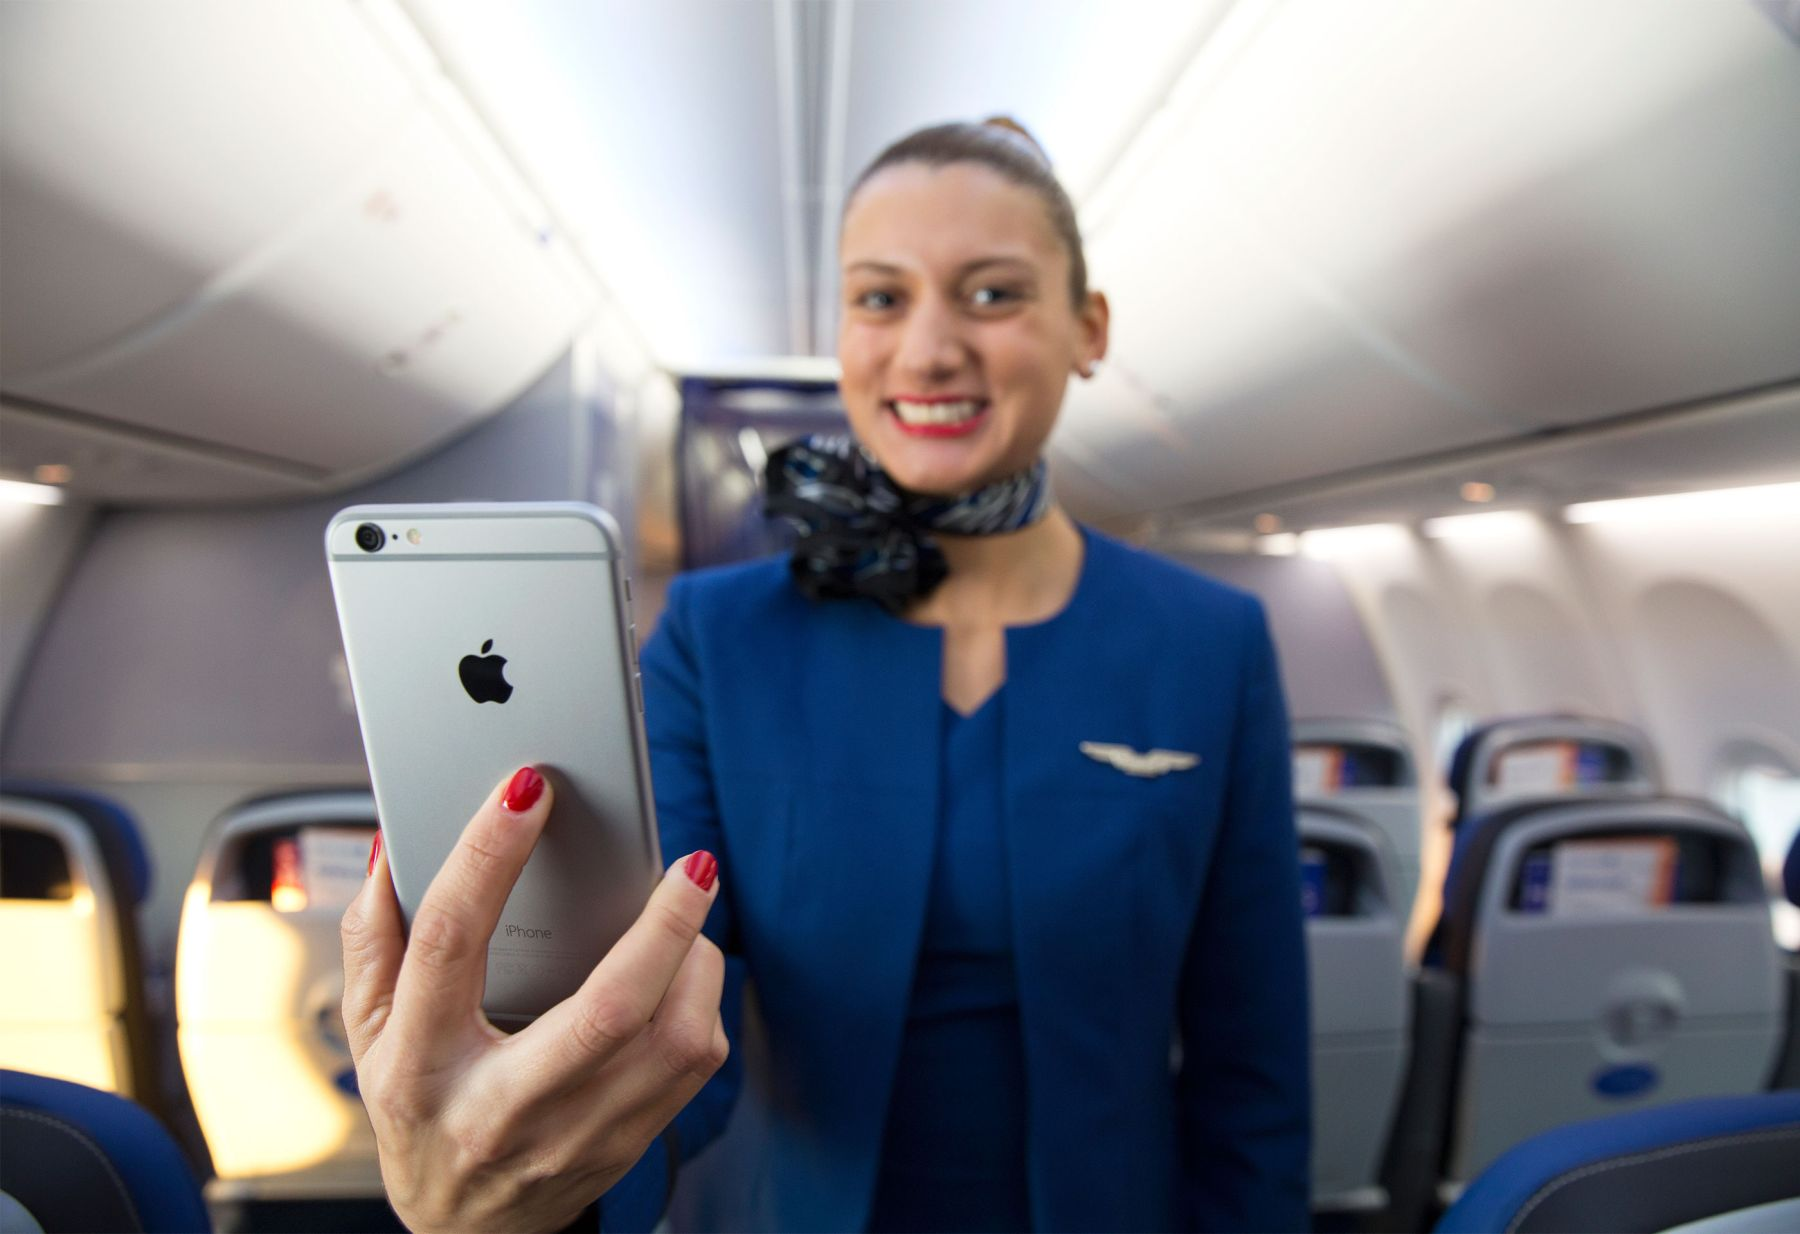 United flight attendants will get the iPhone 6 Plus for supporting you